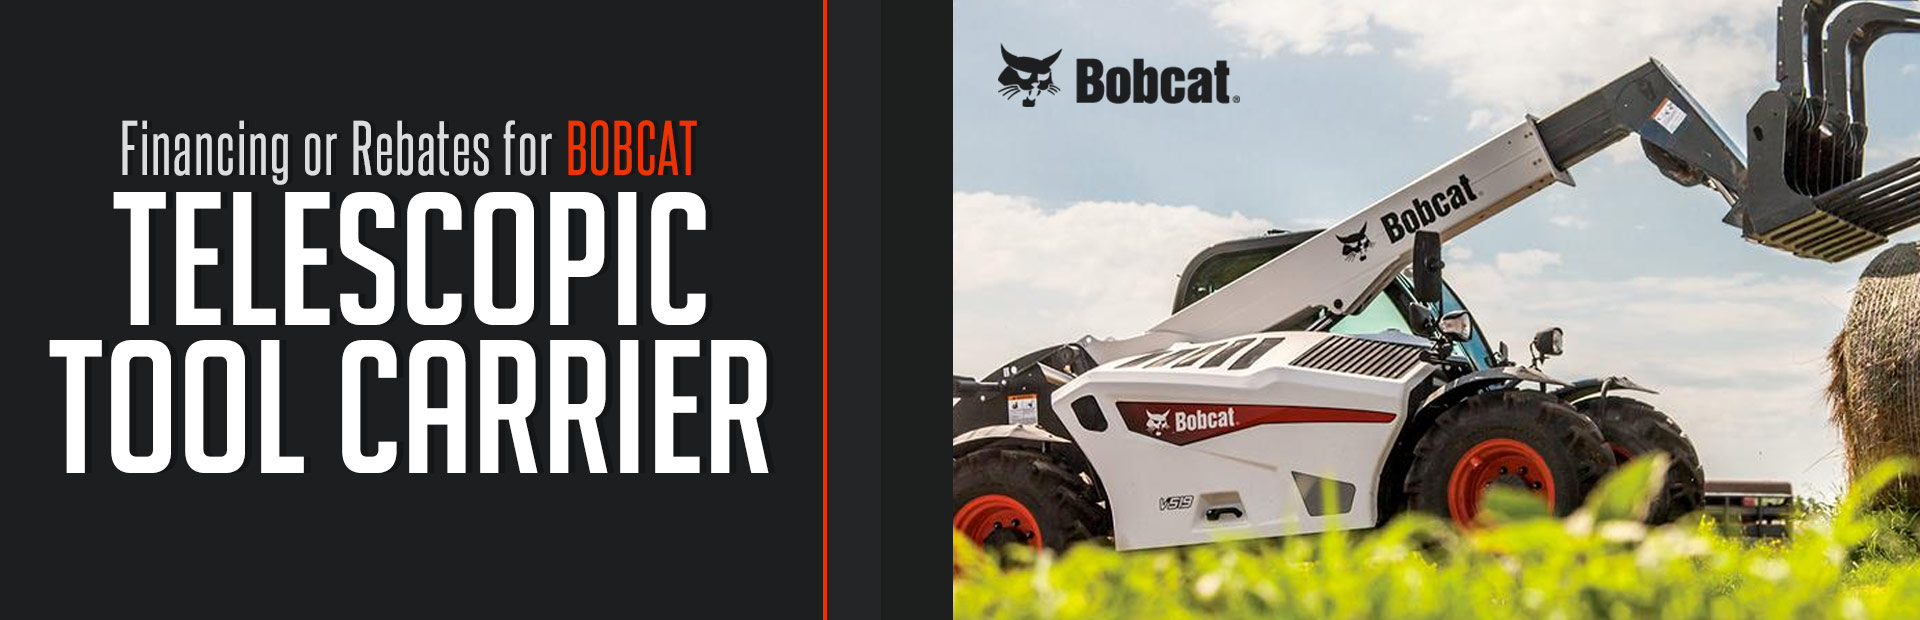 Bobcat: Financing or Rebates for Telescopic Tool Carrier